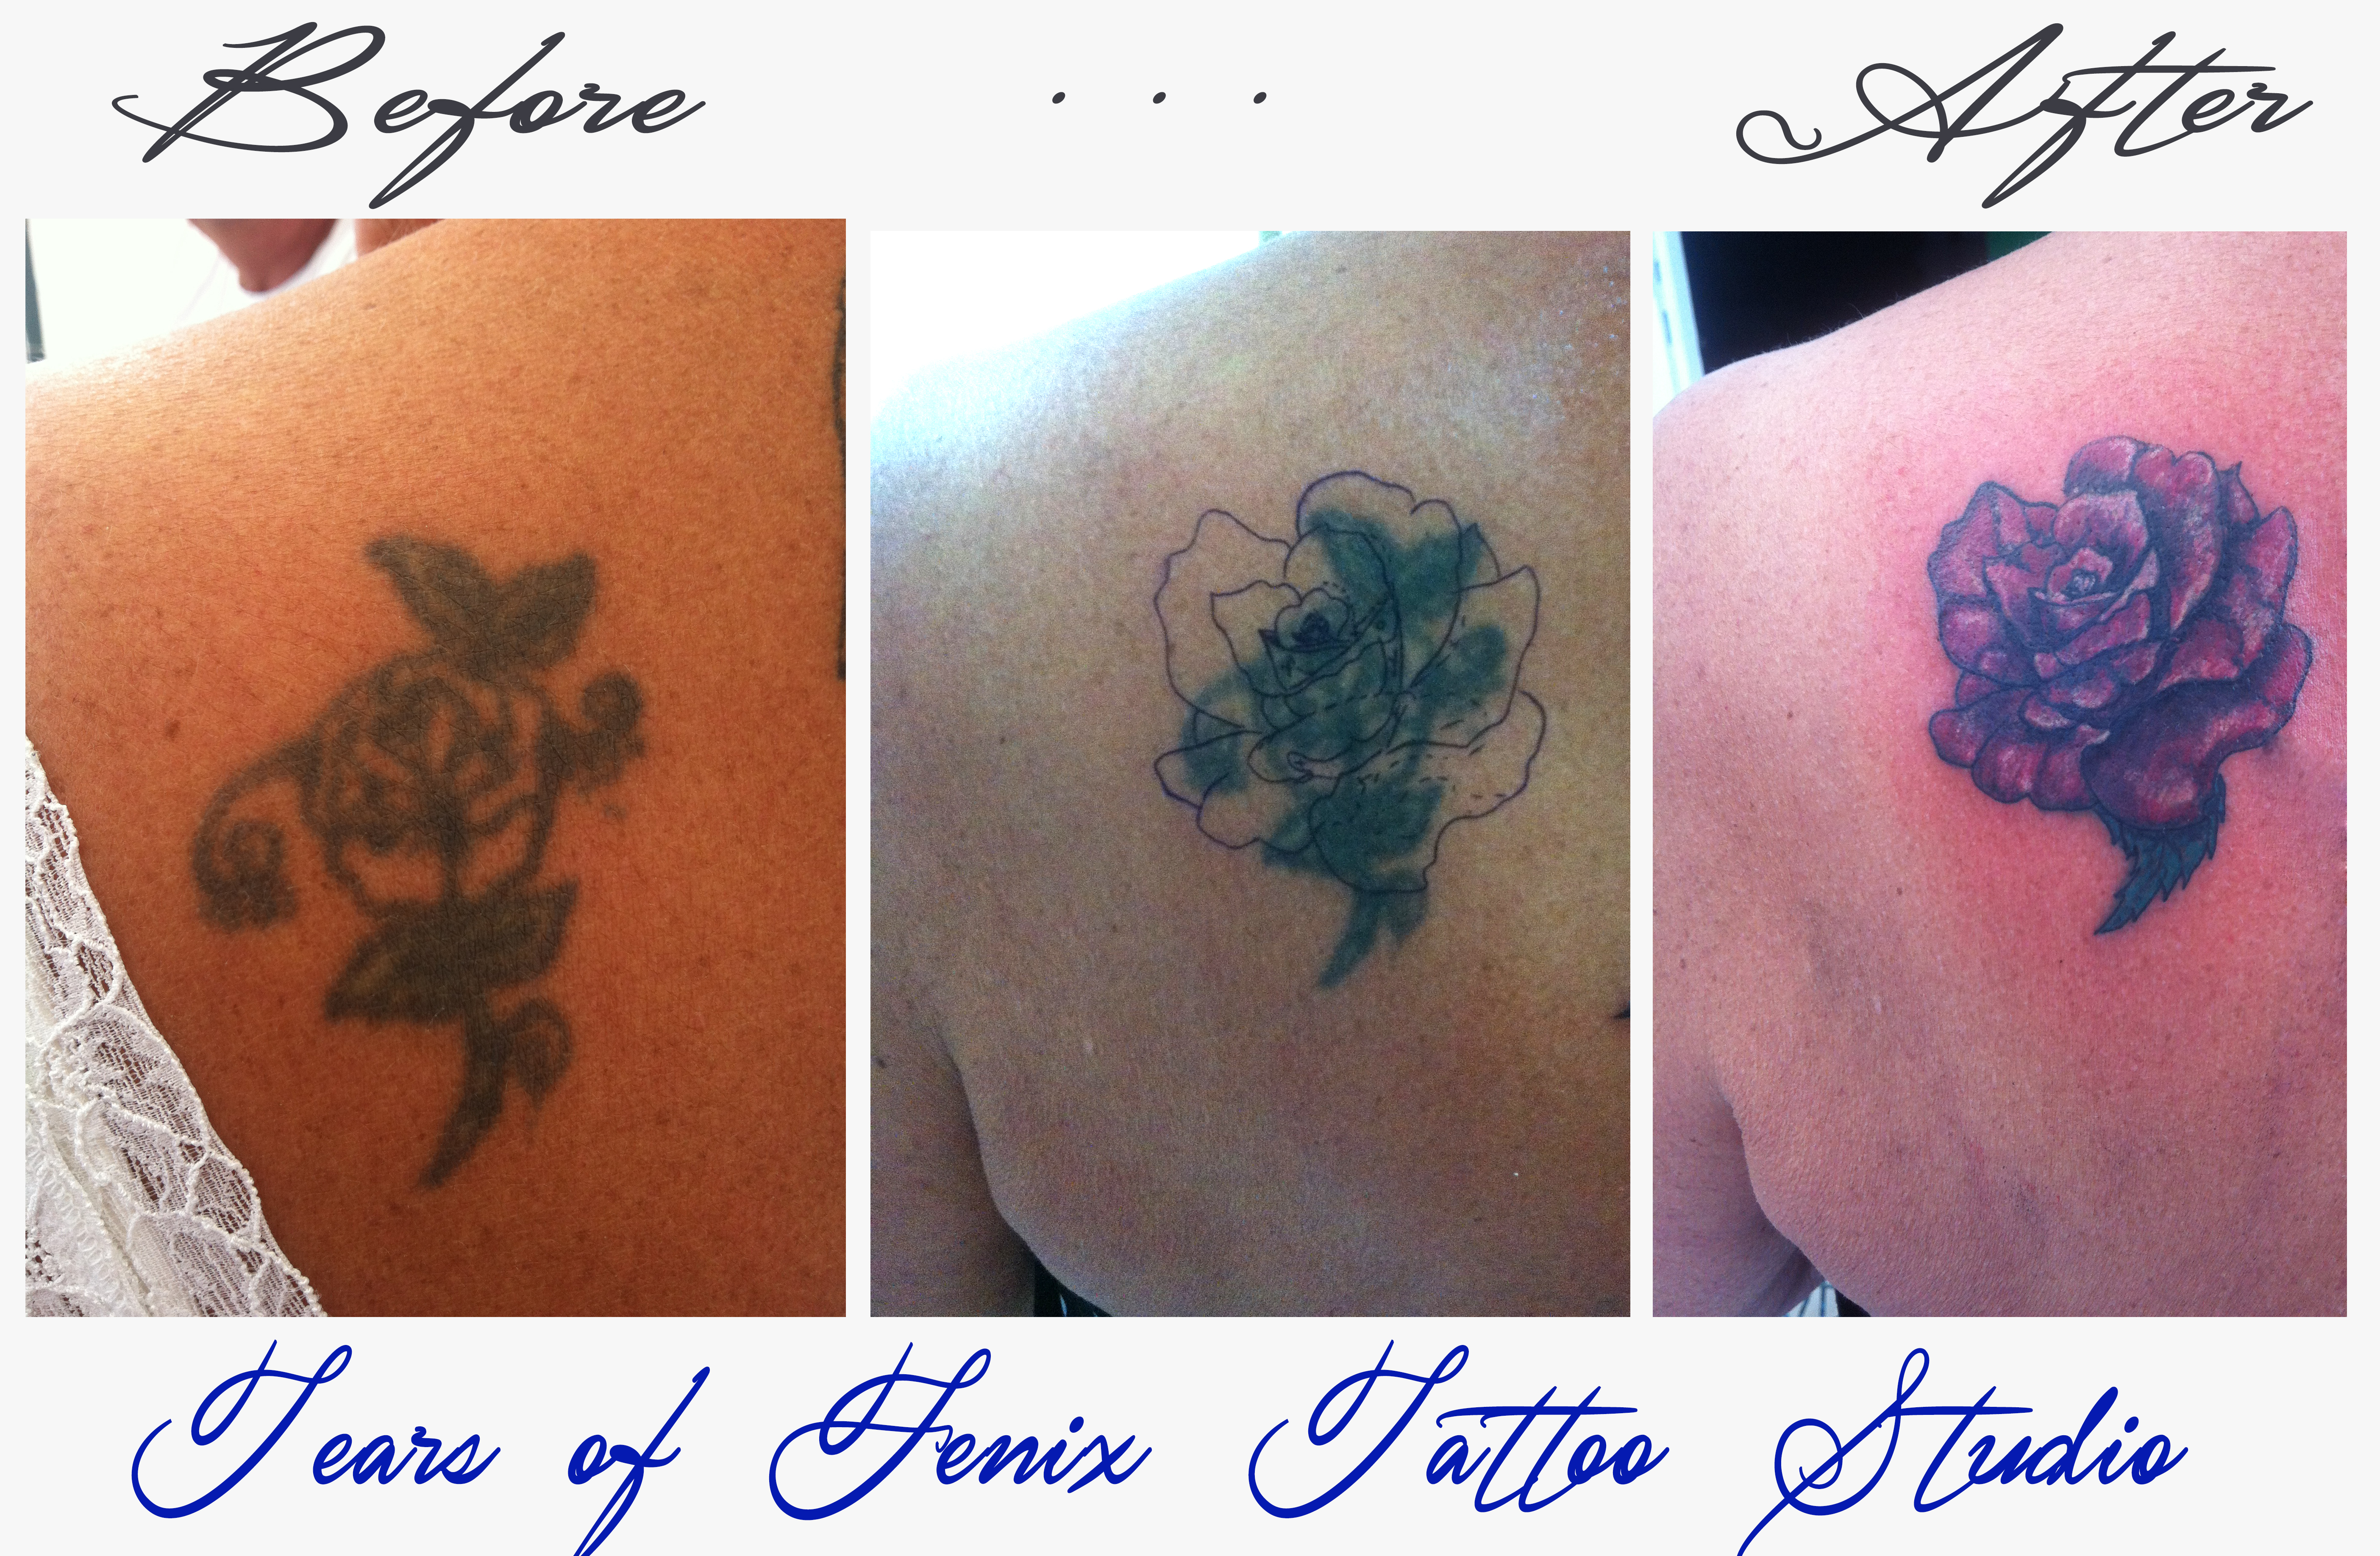 Tattoos For Three Best Friends Cover-Ups Tatouage Mas...